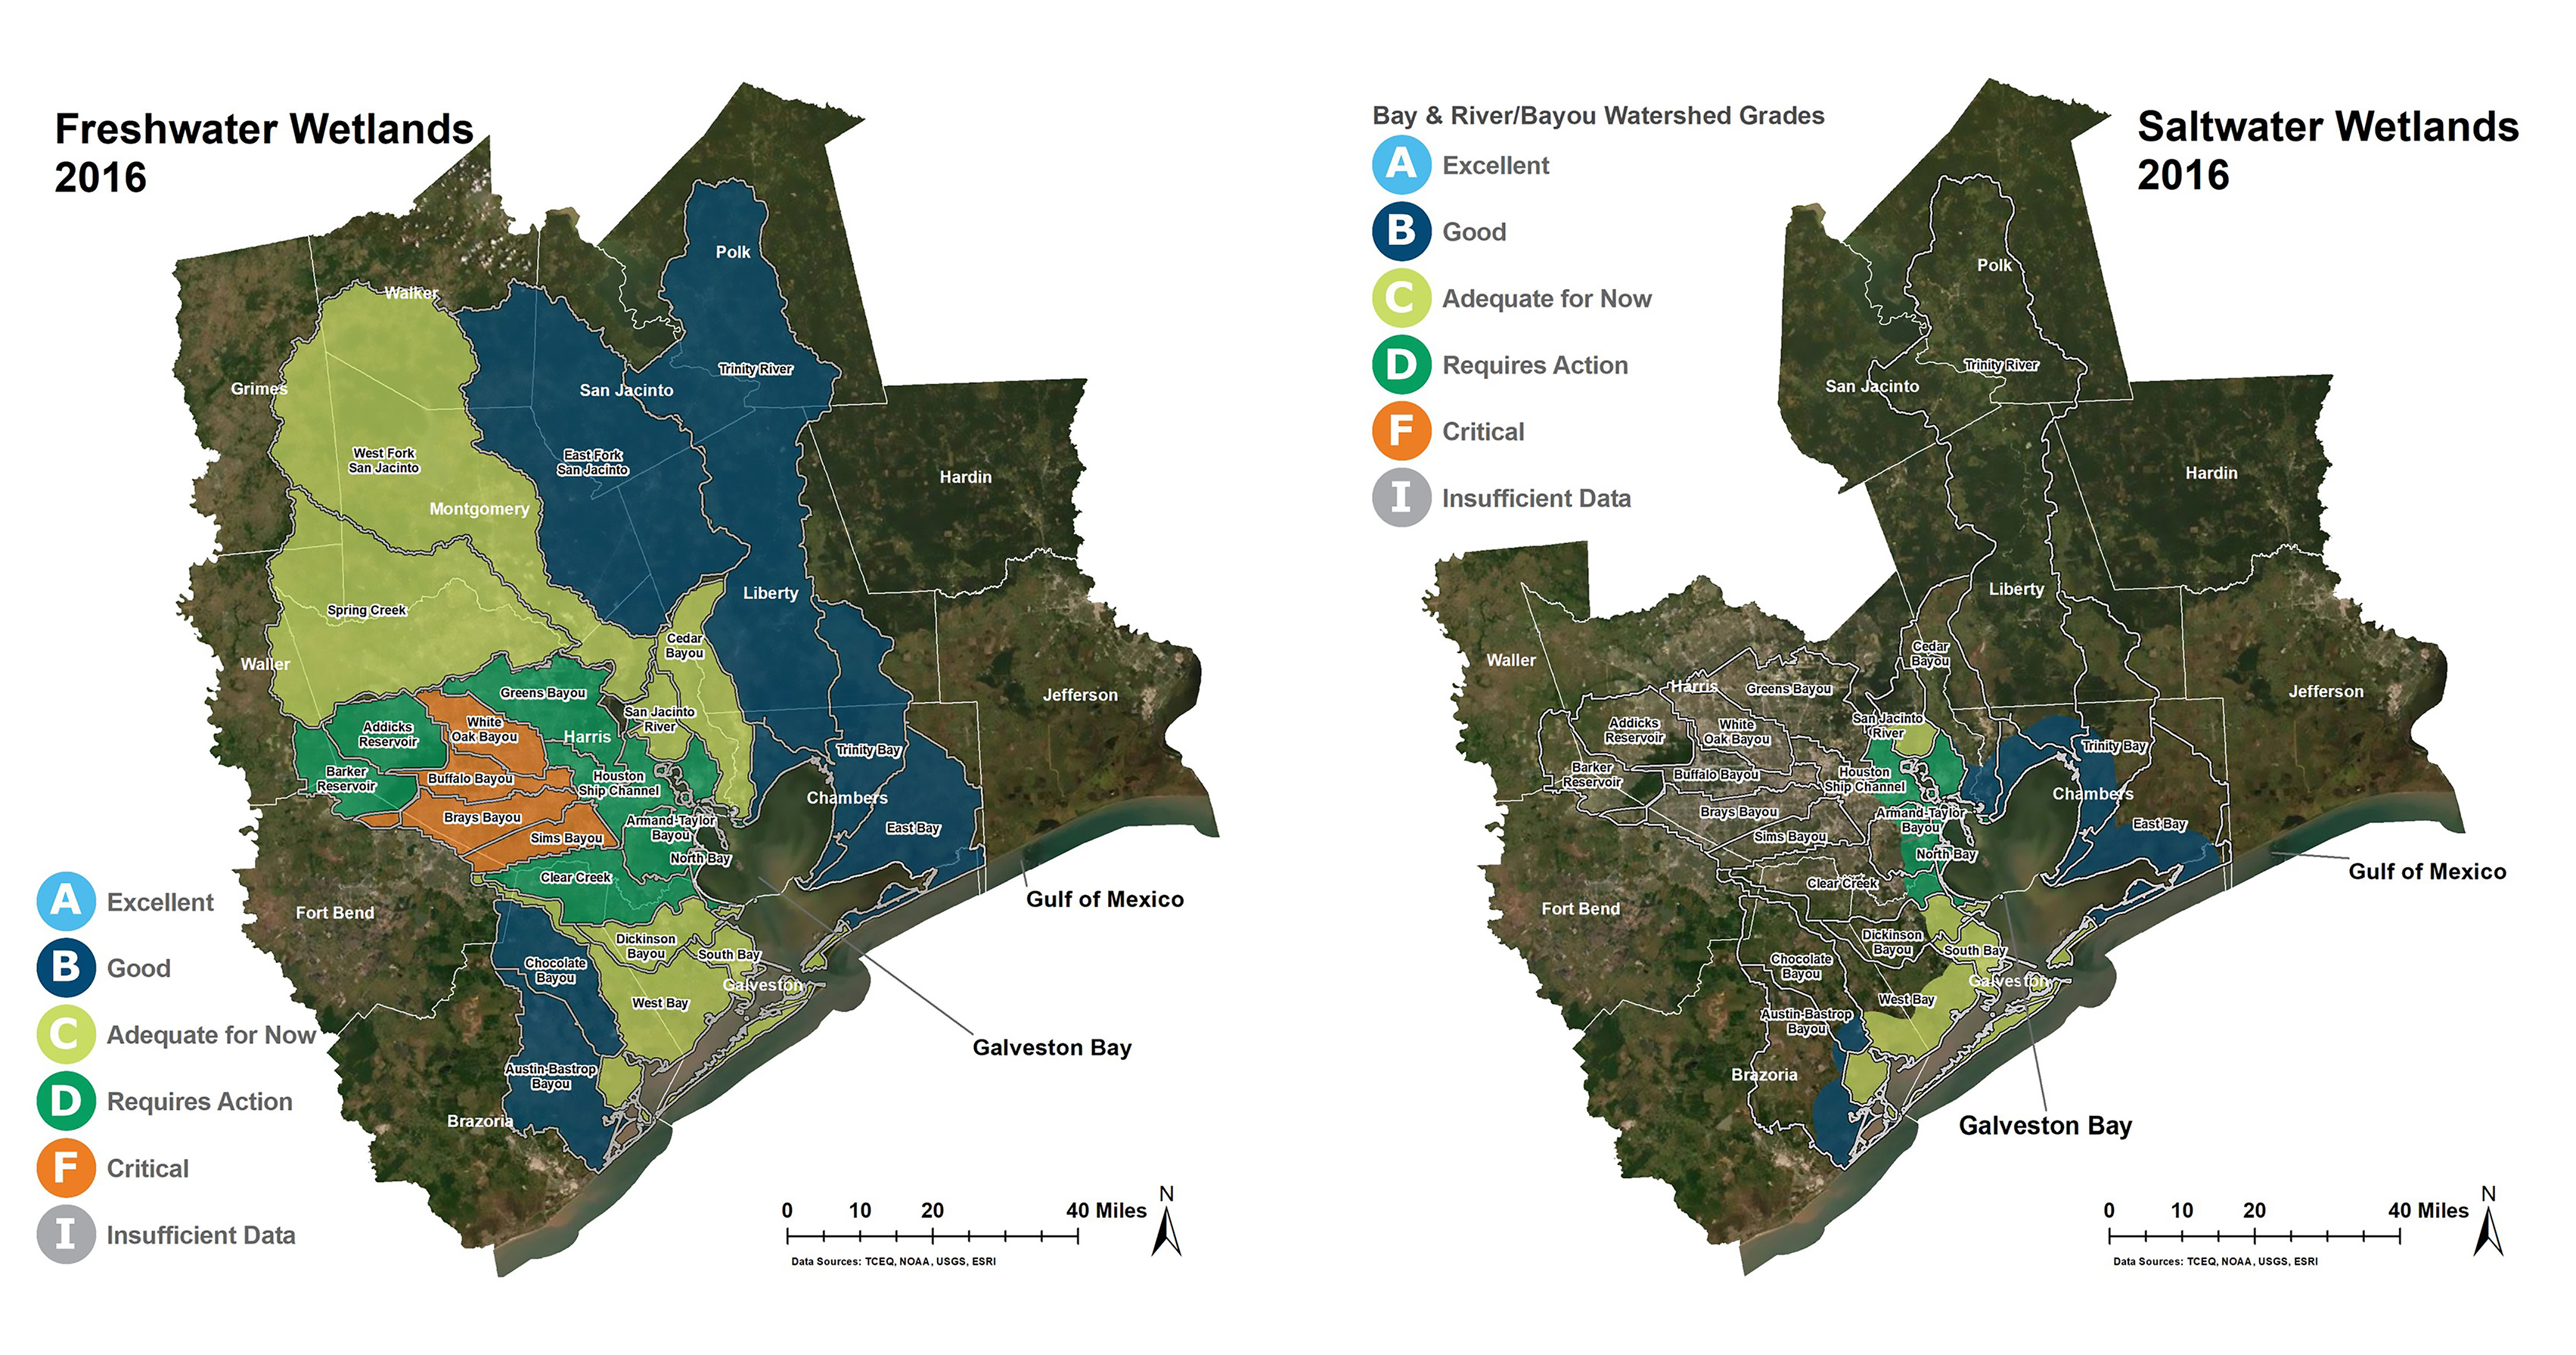 2016 maps of freshwater and saltwater wetlands in Galveston Bay, Texas. Colors indicate wetland loss. See caption for details.